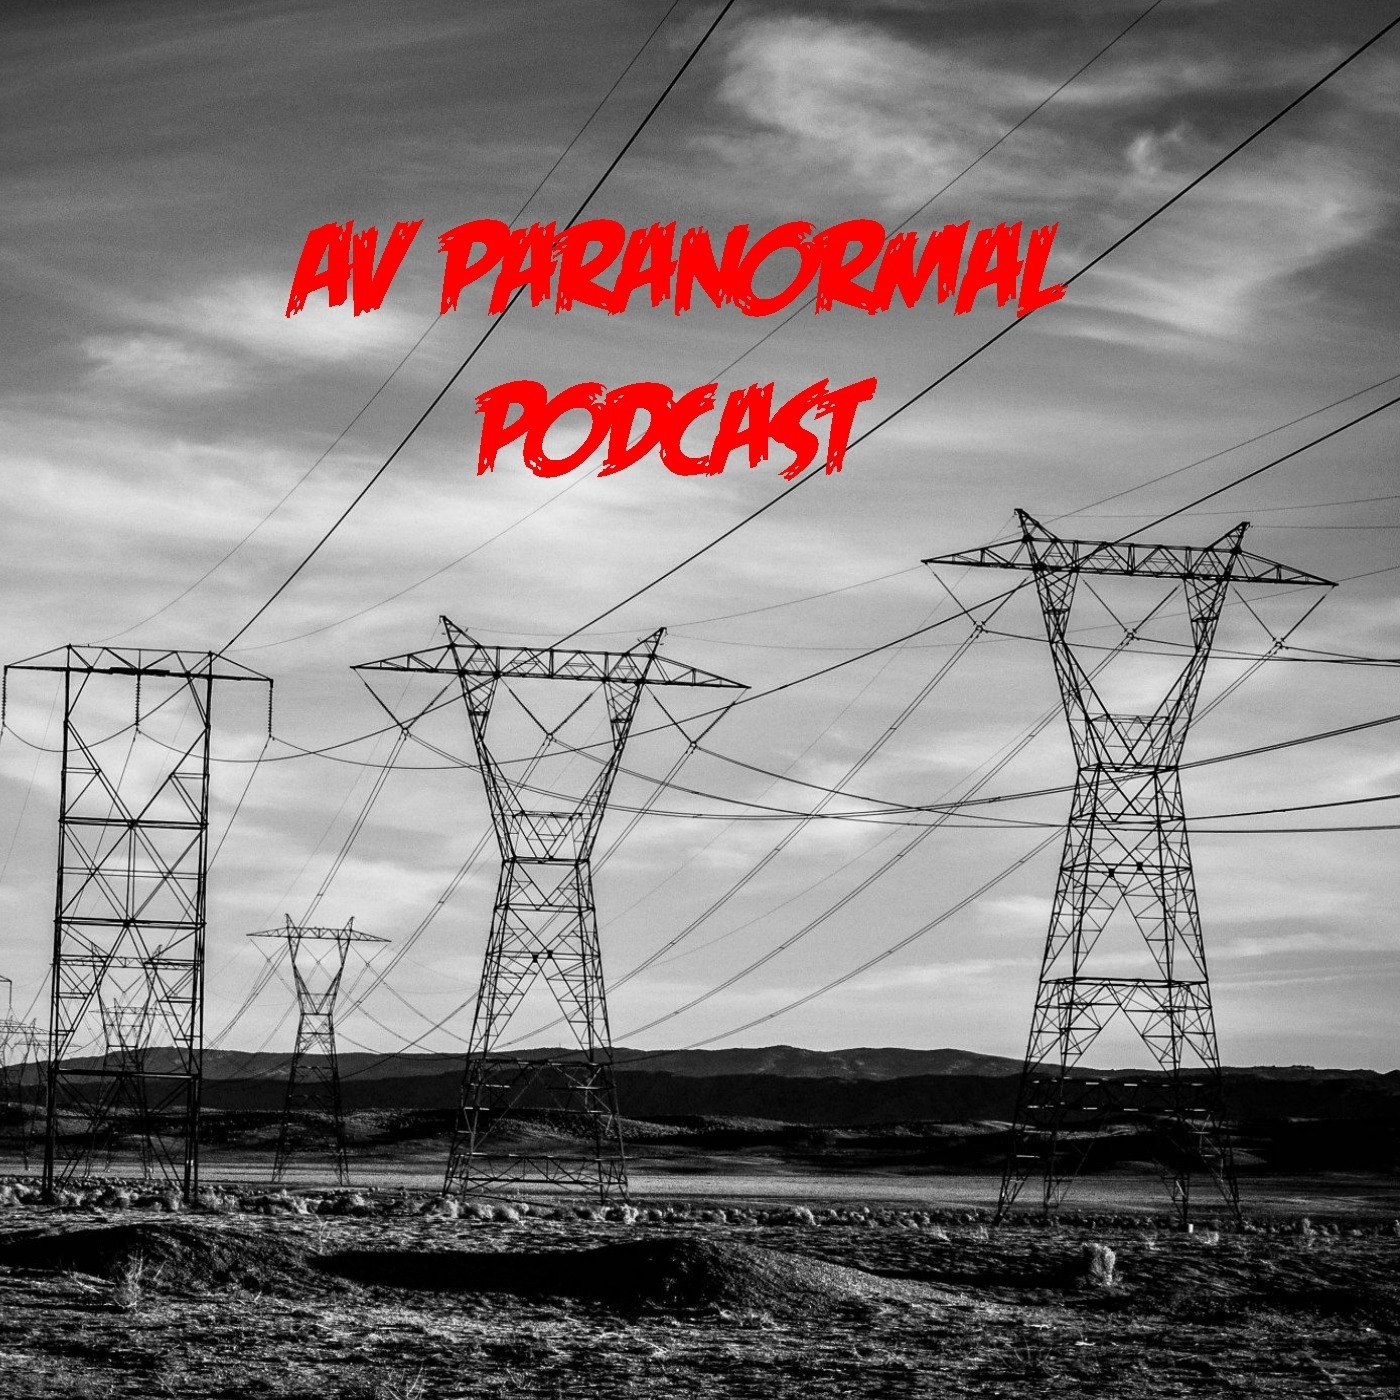 AV Paranormal Podcast